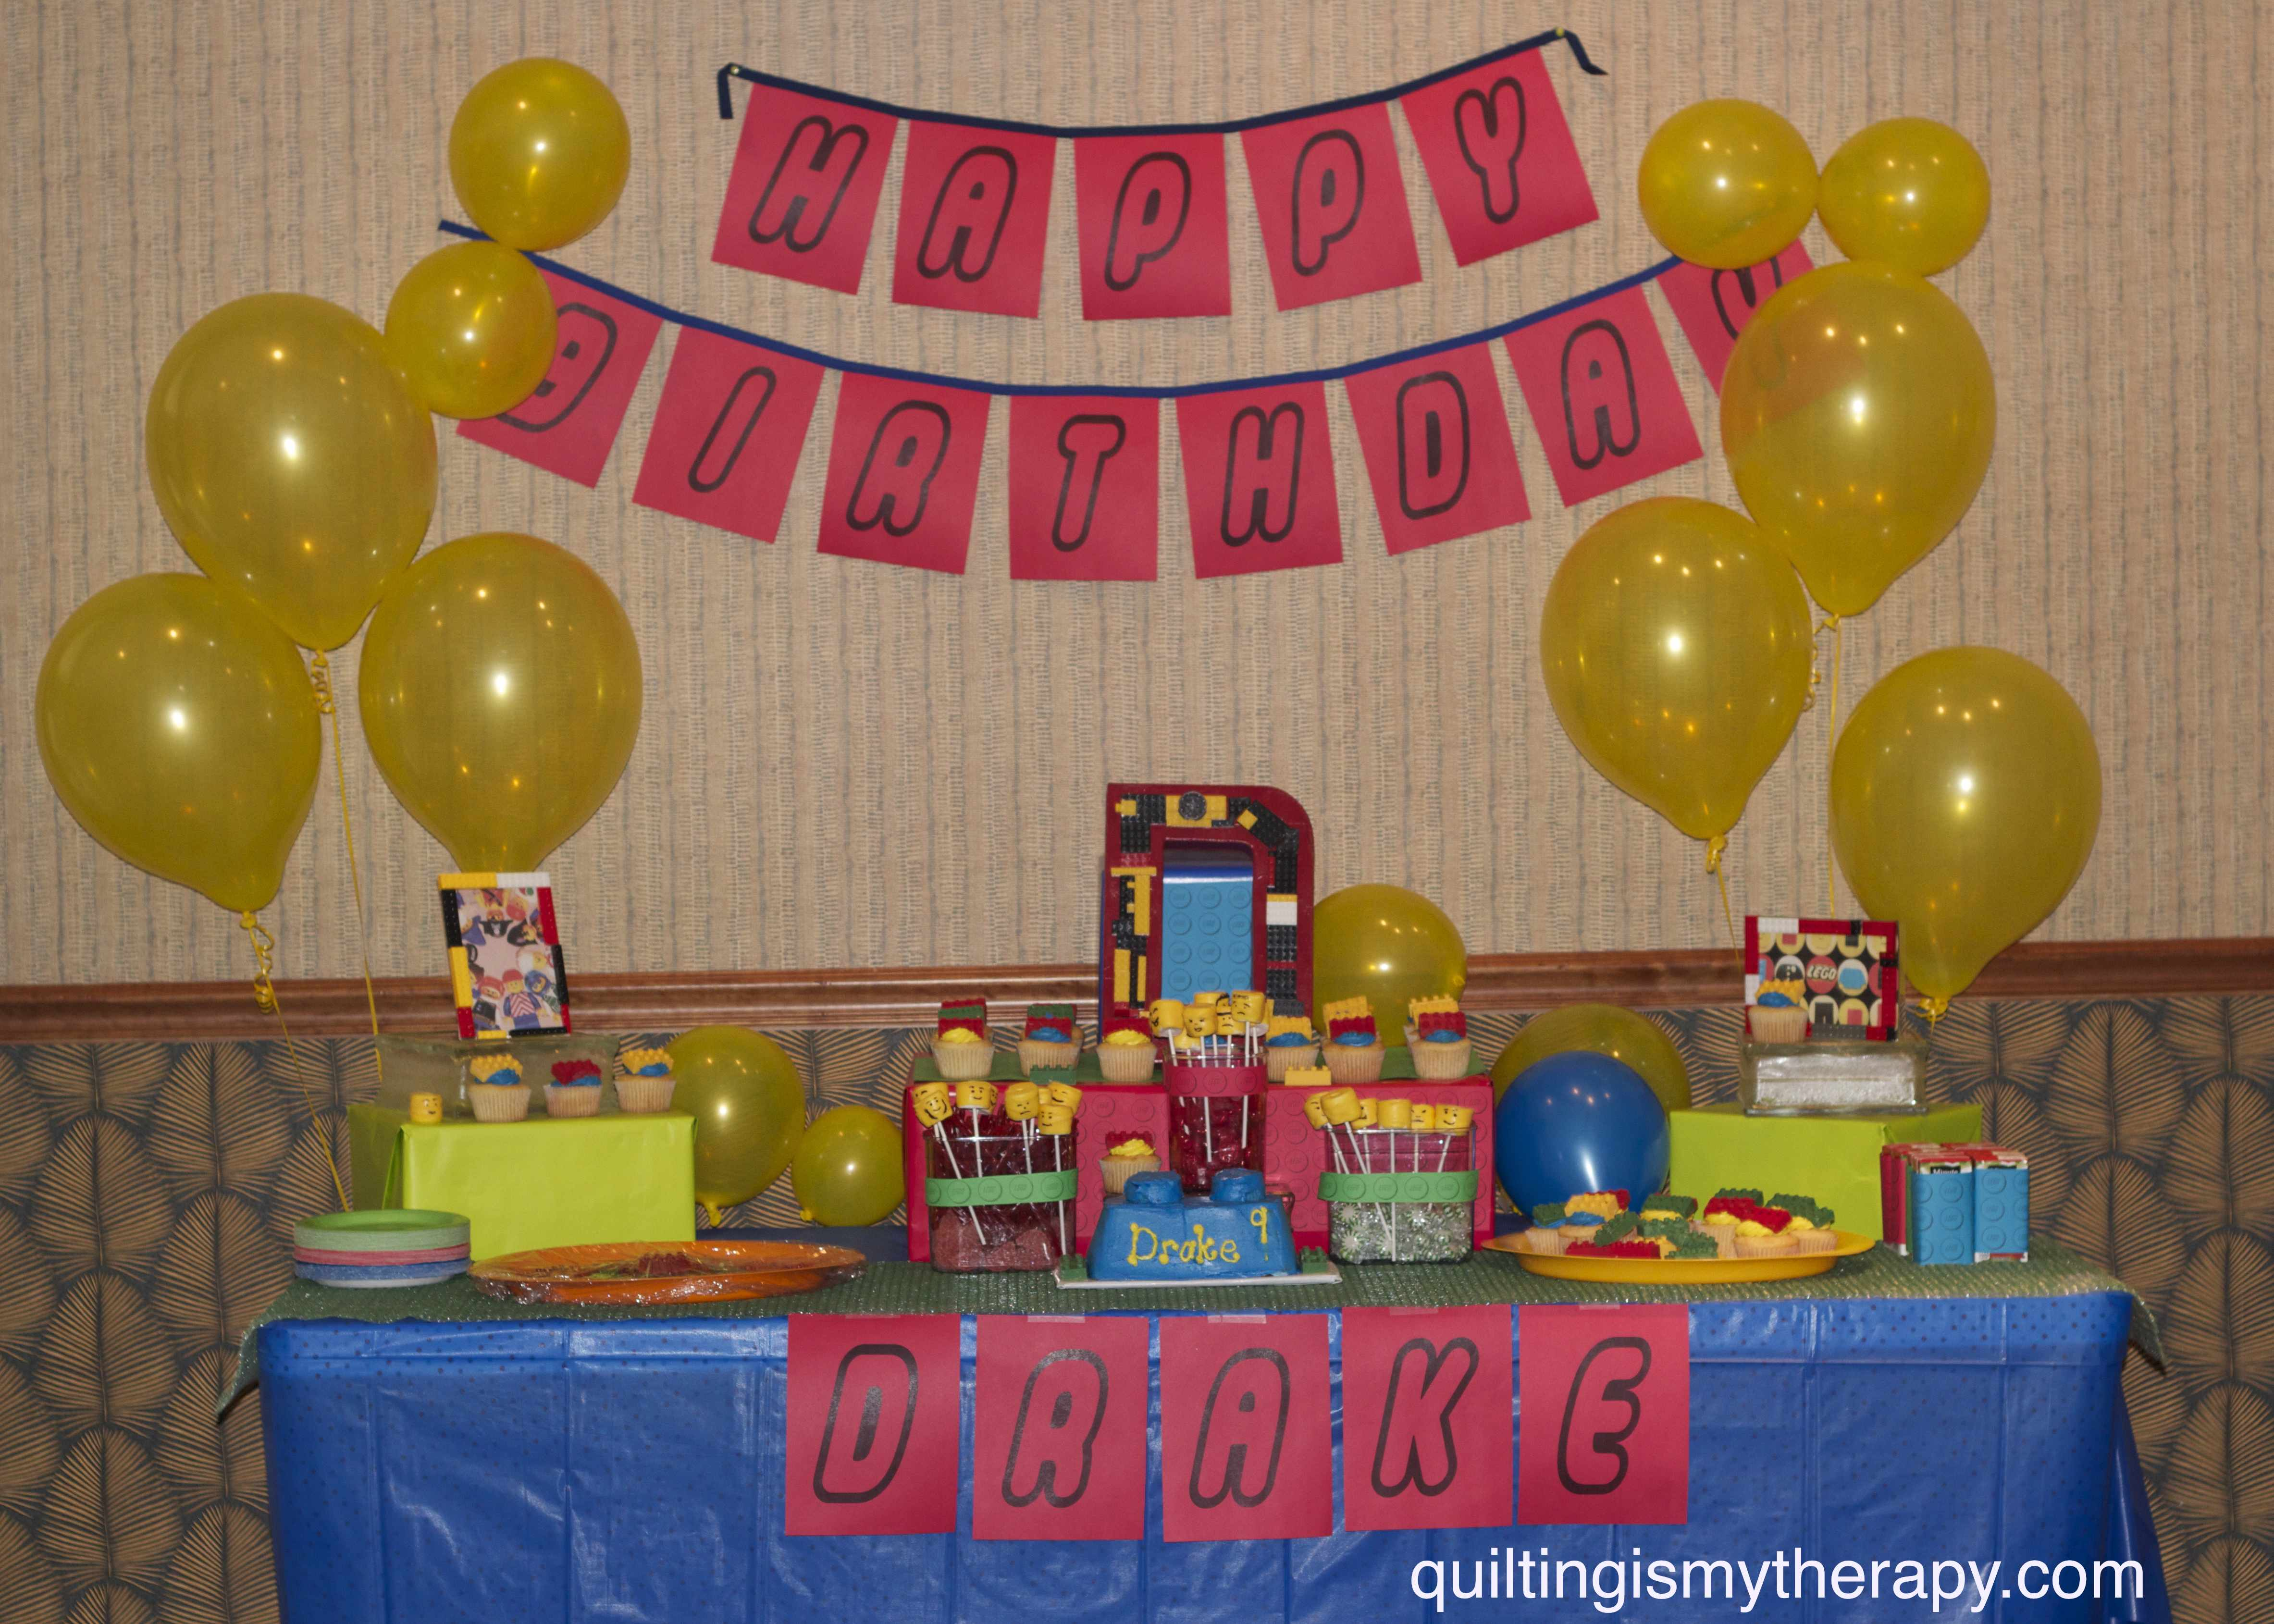 quilting is my therapy lego birthday party quilting is my therapy decorations happy birthday banner